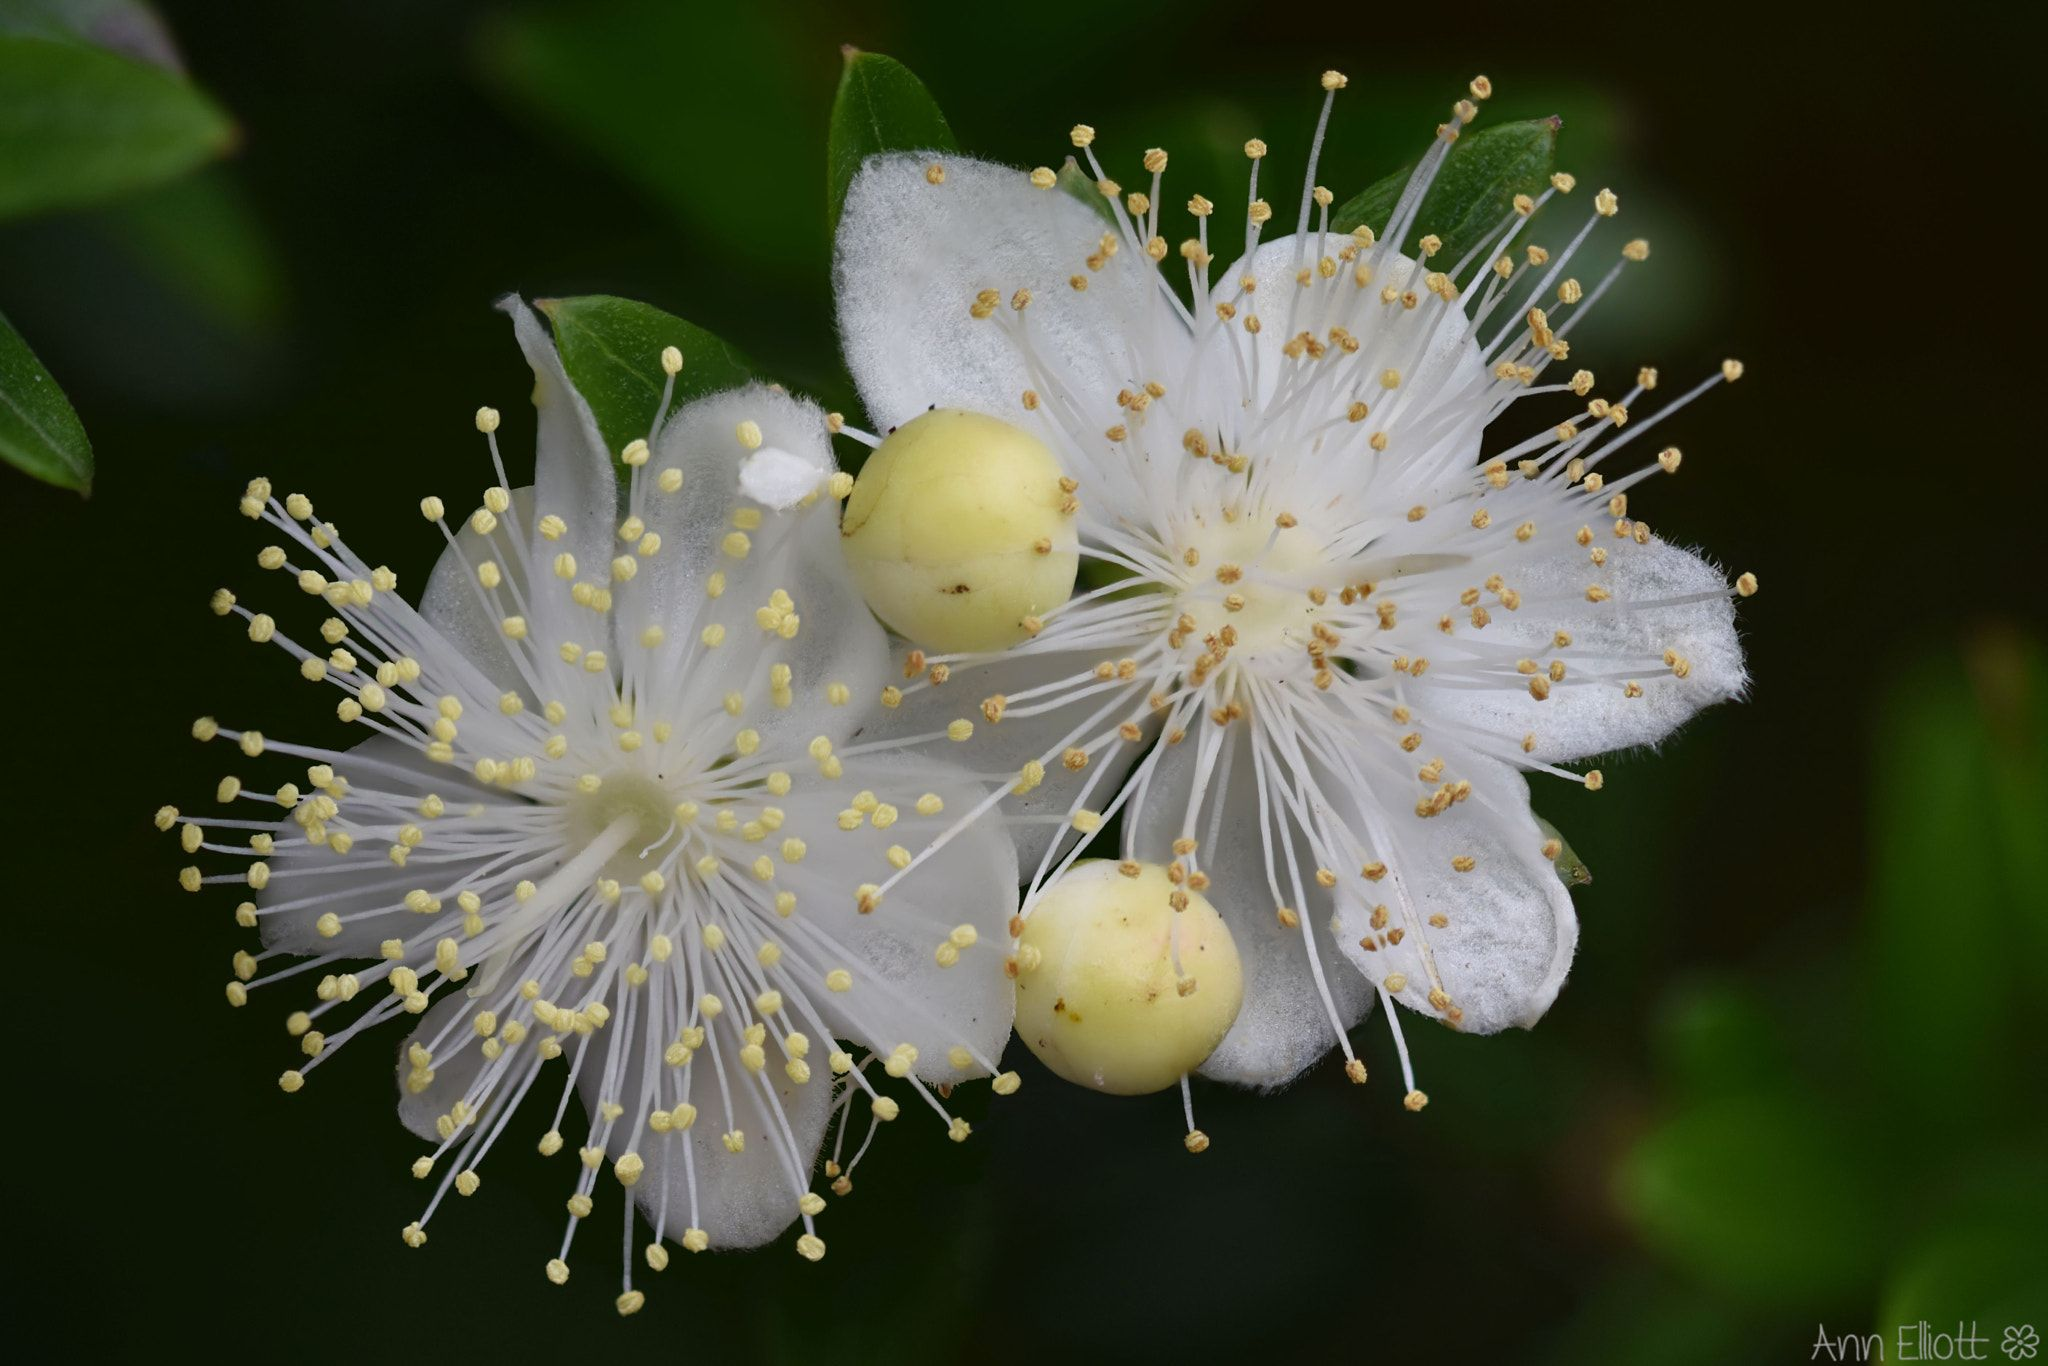 Myrtus Communis Myrtus Communis Commonly Known As The Common Myrtle It Is An Evergreen Shrub Native To Mediterranean Regions Photographed In The Mediterra